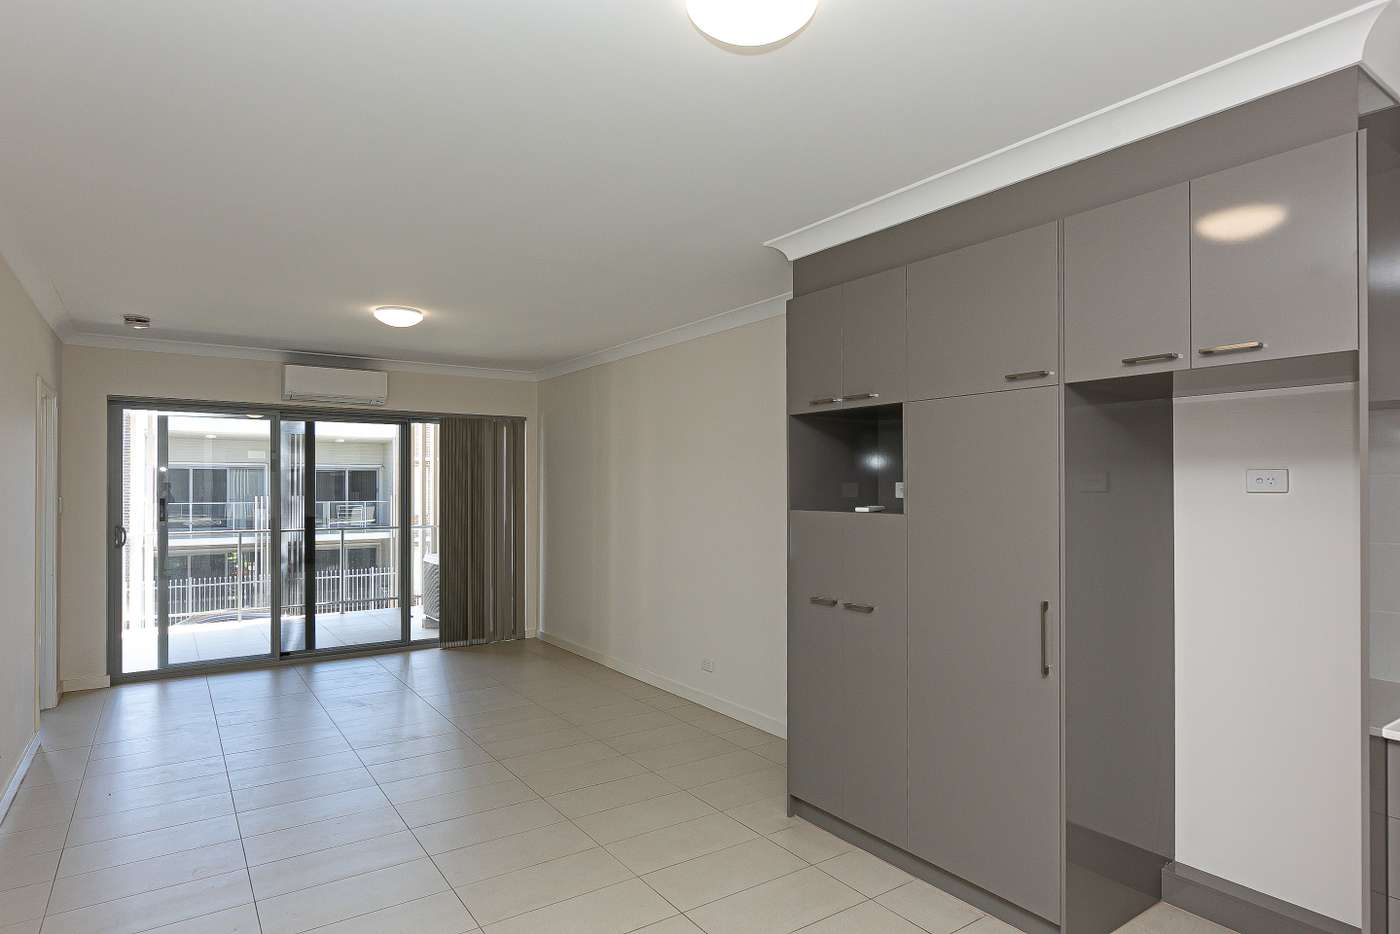 Seventh view of Homely apartment listing, 16 Grey St, Cannington WA 6107